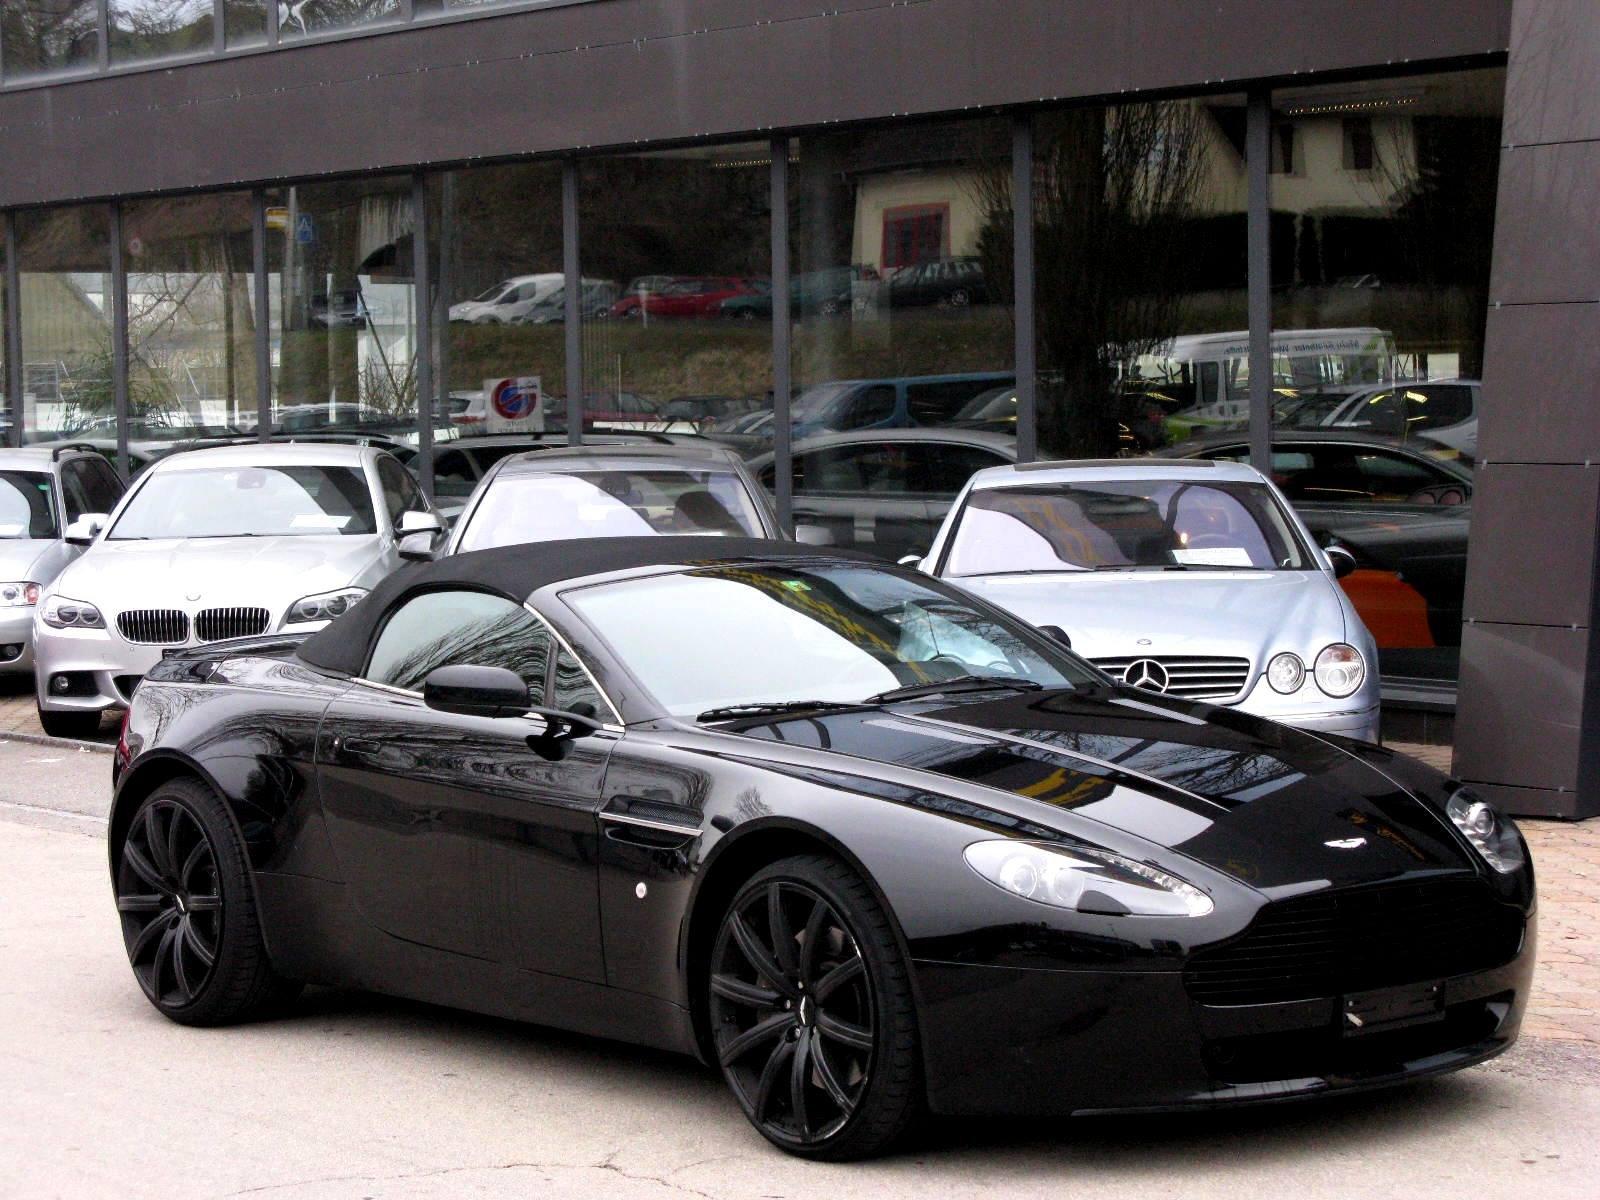 Hd Wallpapers Aston Martin Car Wallpaper Download Gieiphoneandroid Ga